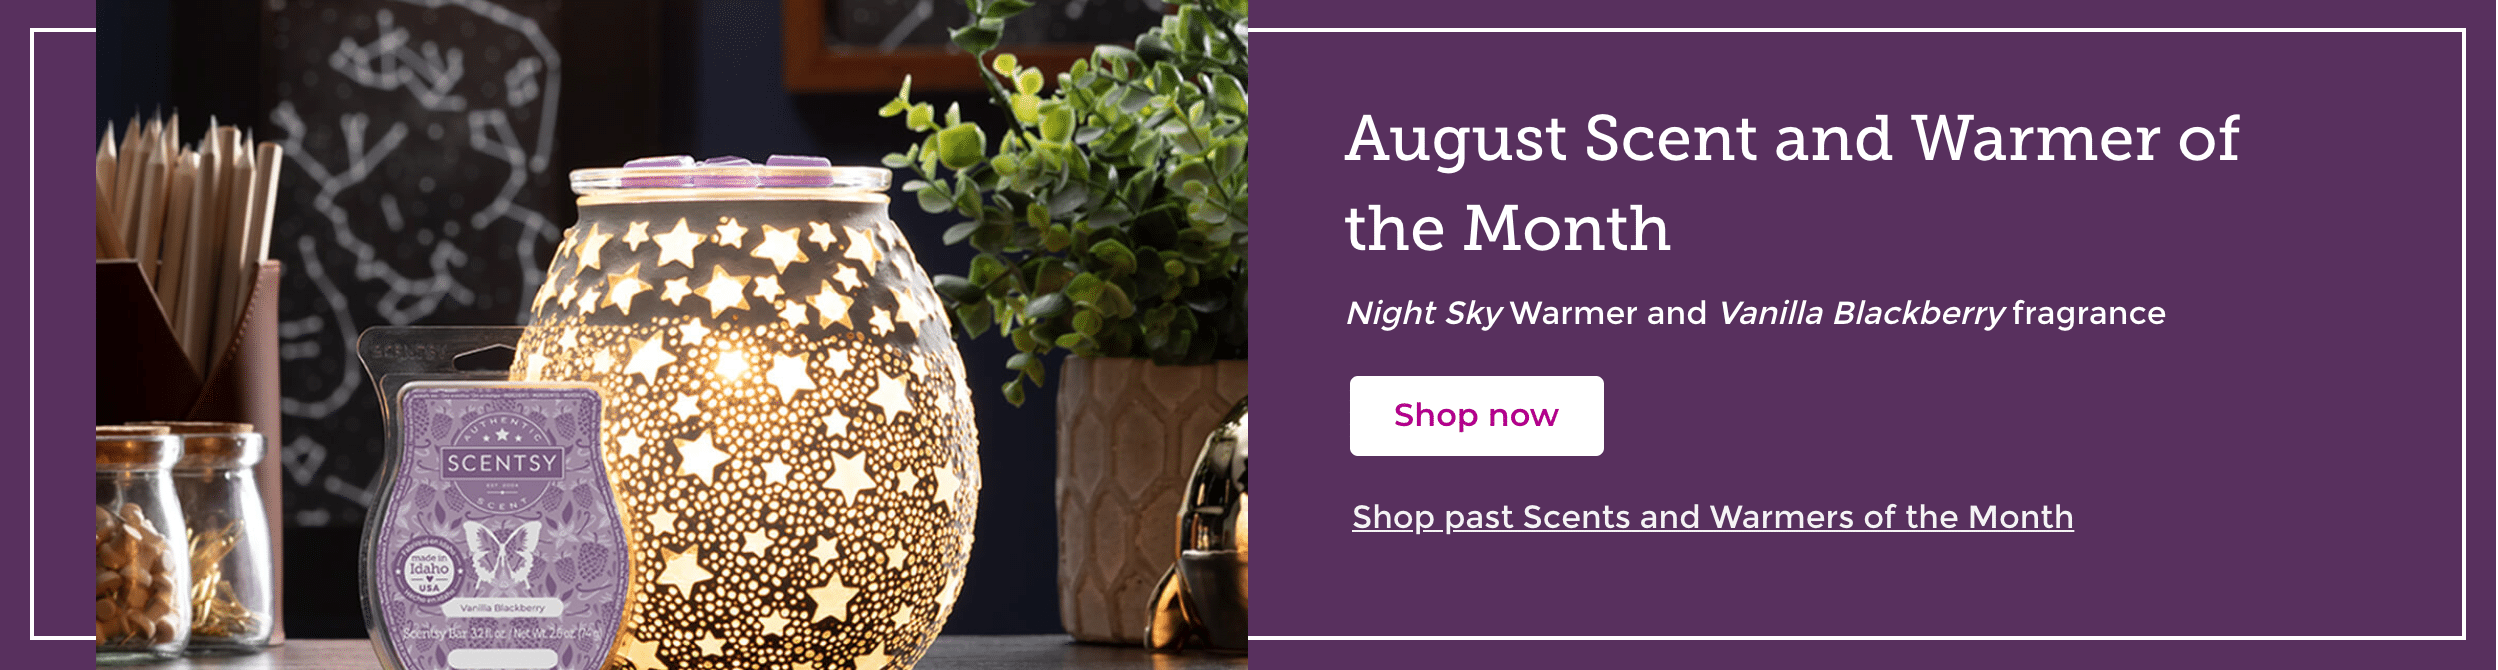 august scent of the month scentsy